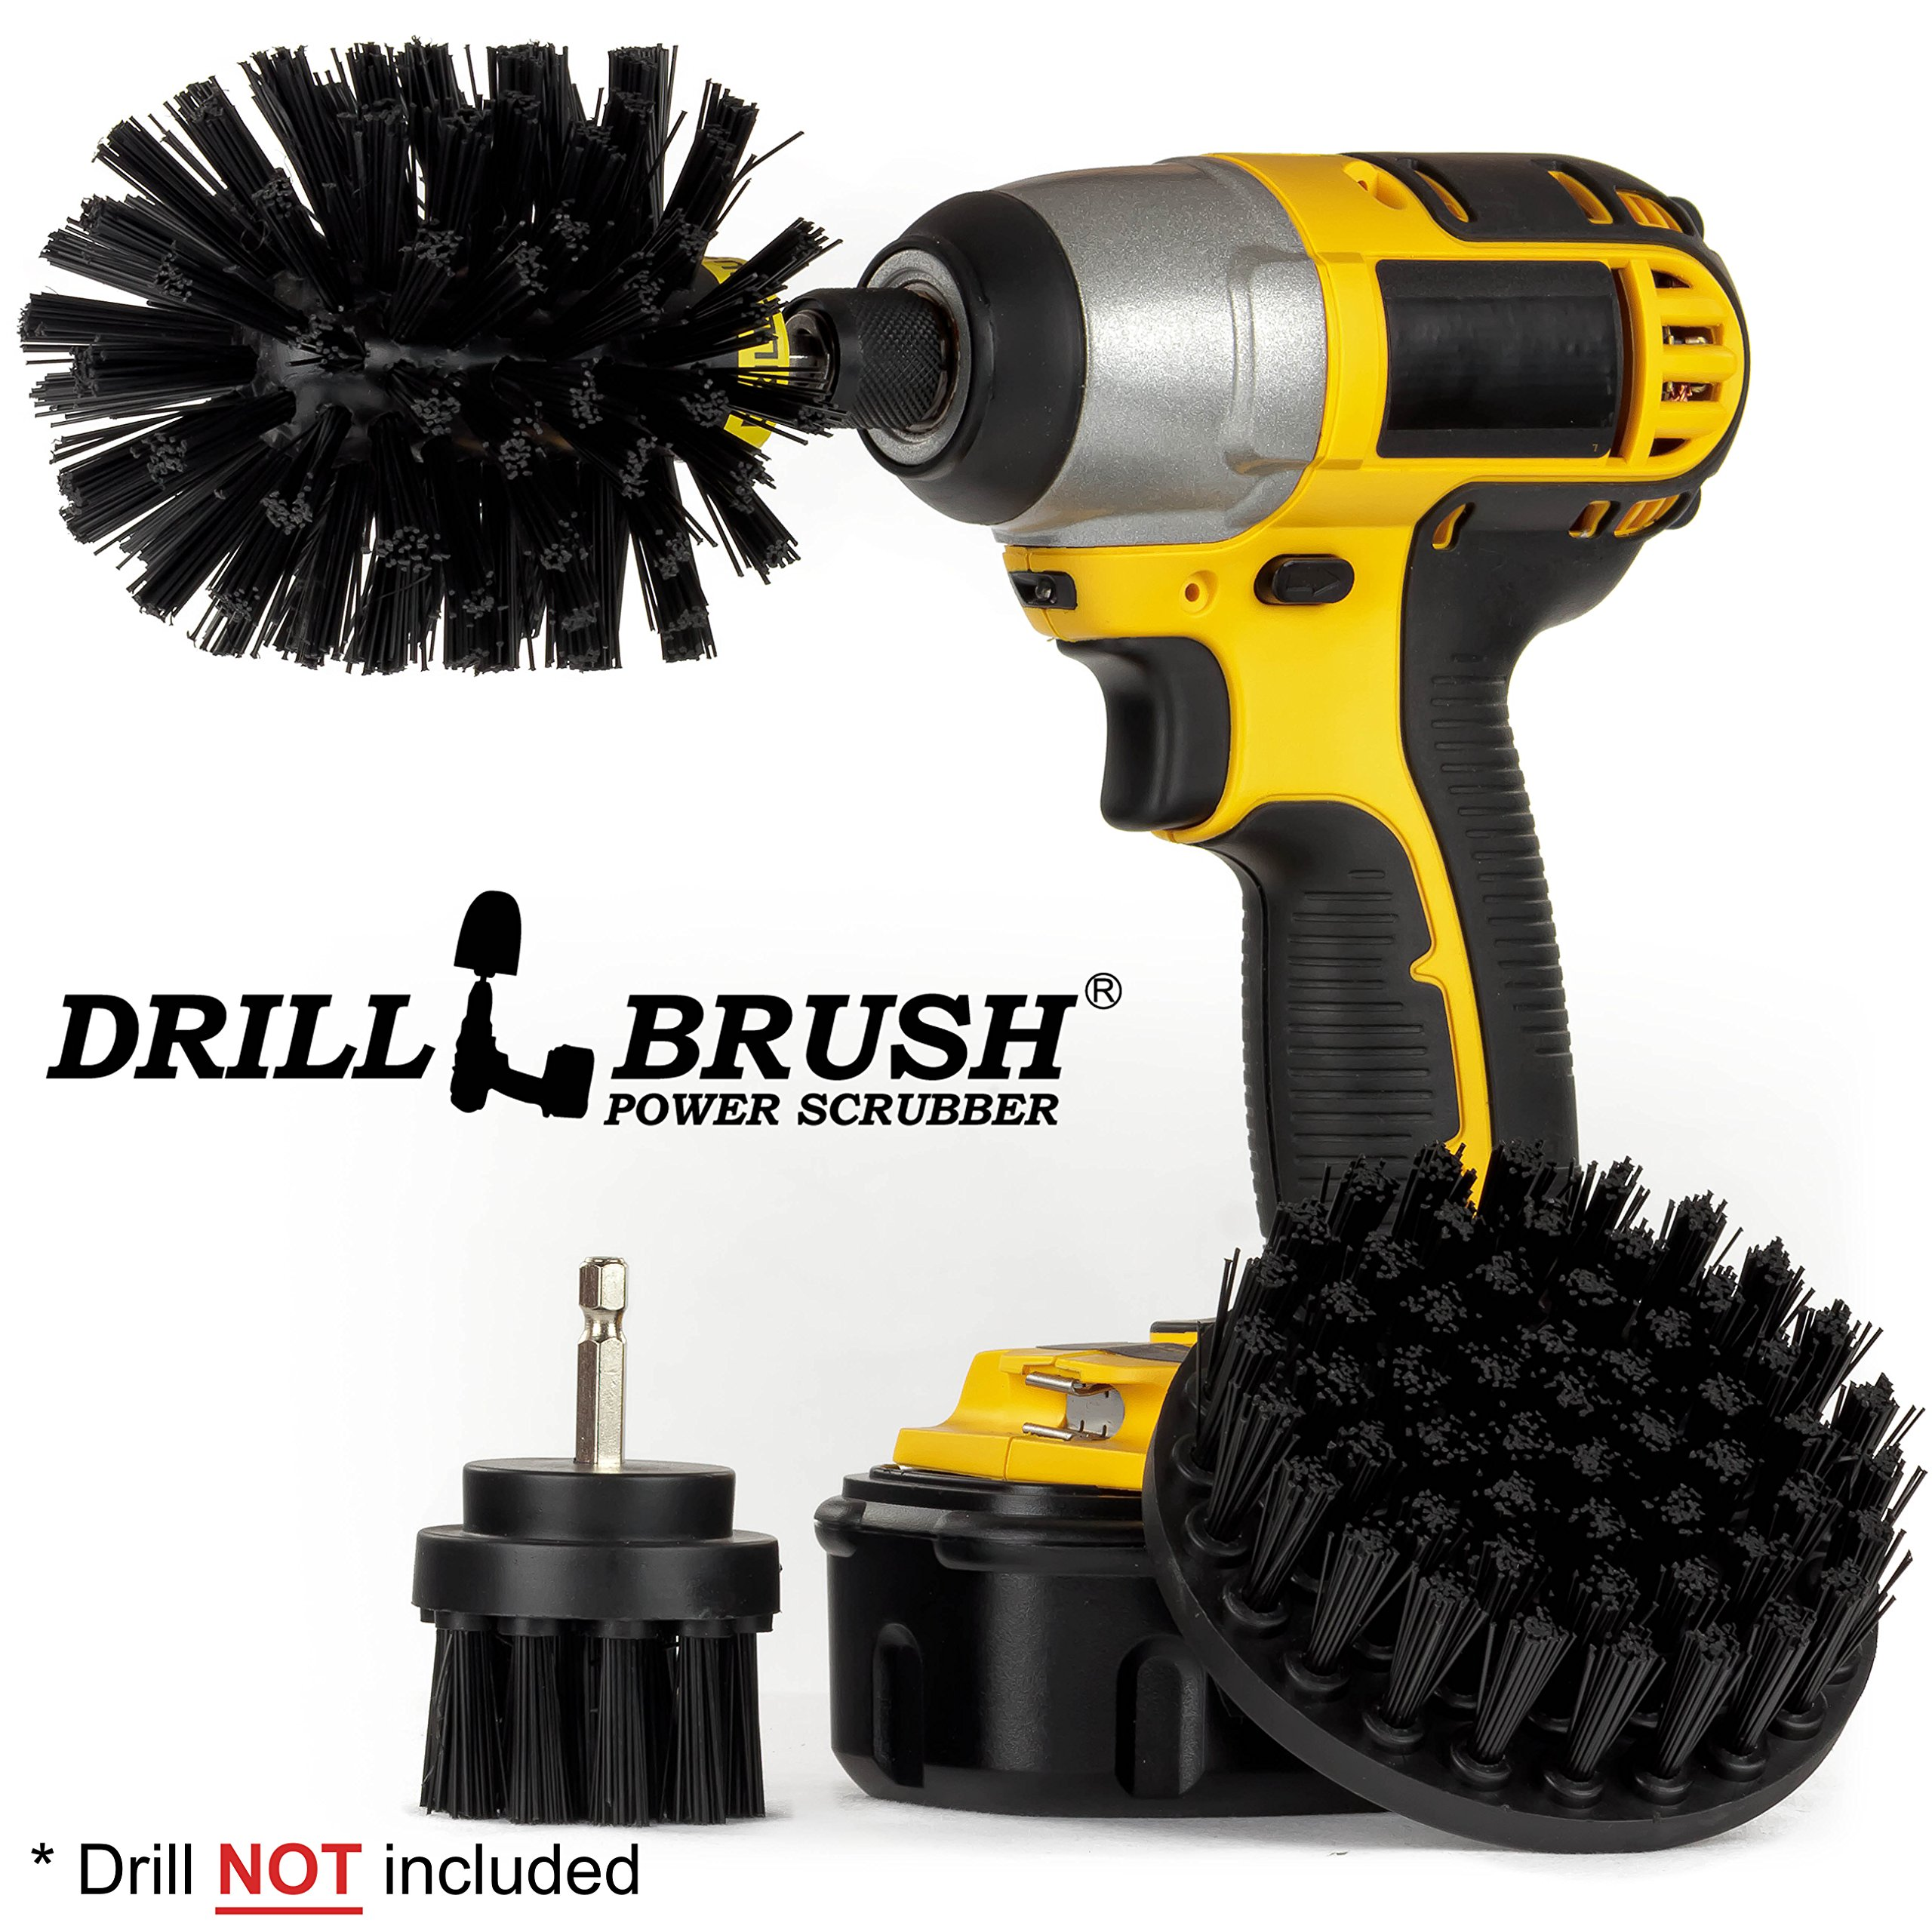 Replace Wire Brushes for Drill. Ultra Stiff Nylon Drill Powered Attachment Kit for Loose Paint Stripping, Rust Removal and Heavy Duty Scrubbing. Graffiti Remover for Stone, Cement, and Brick Walls.